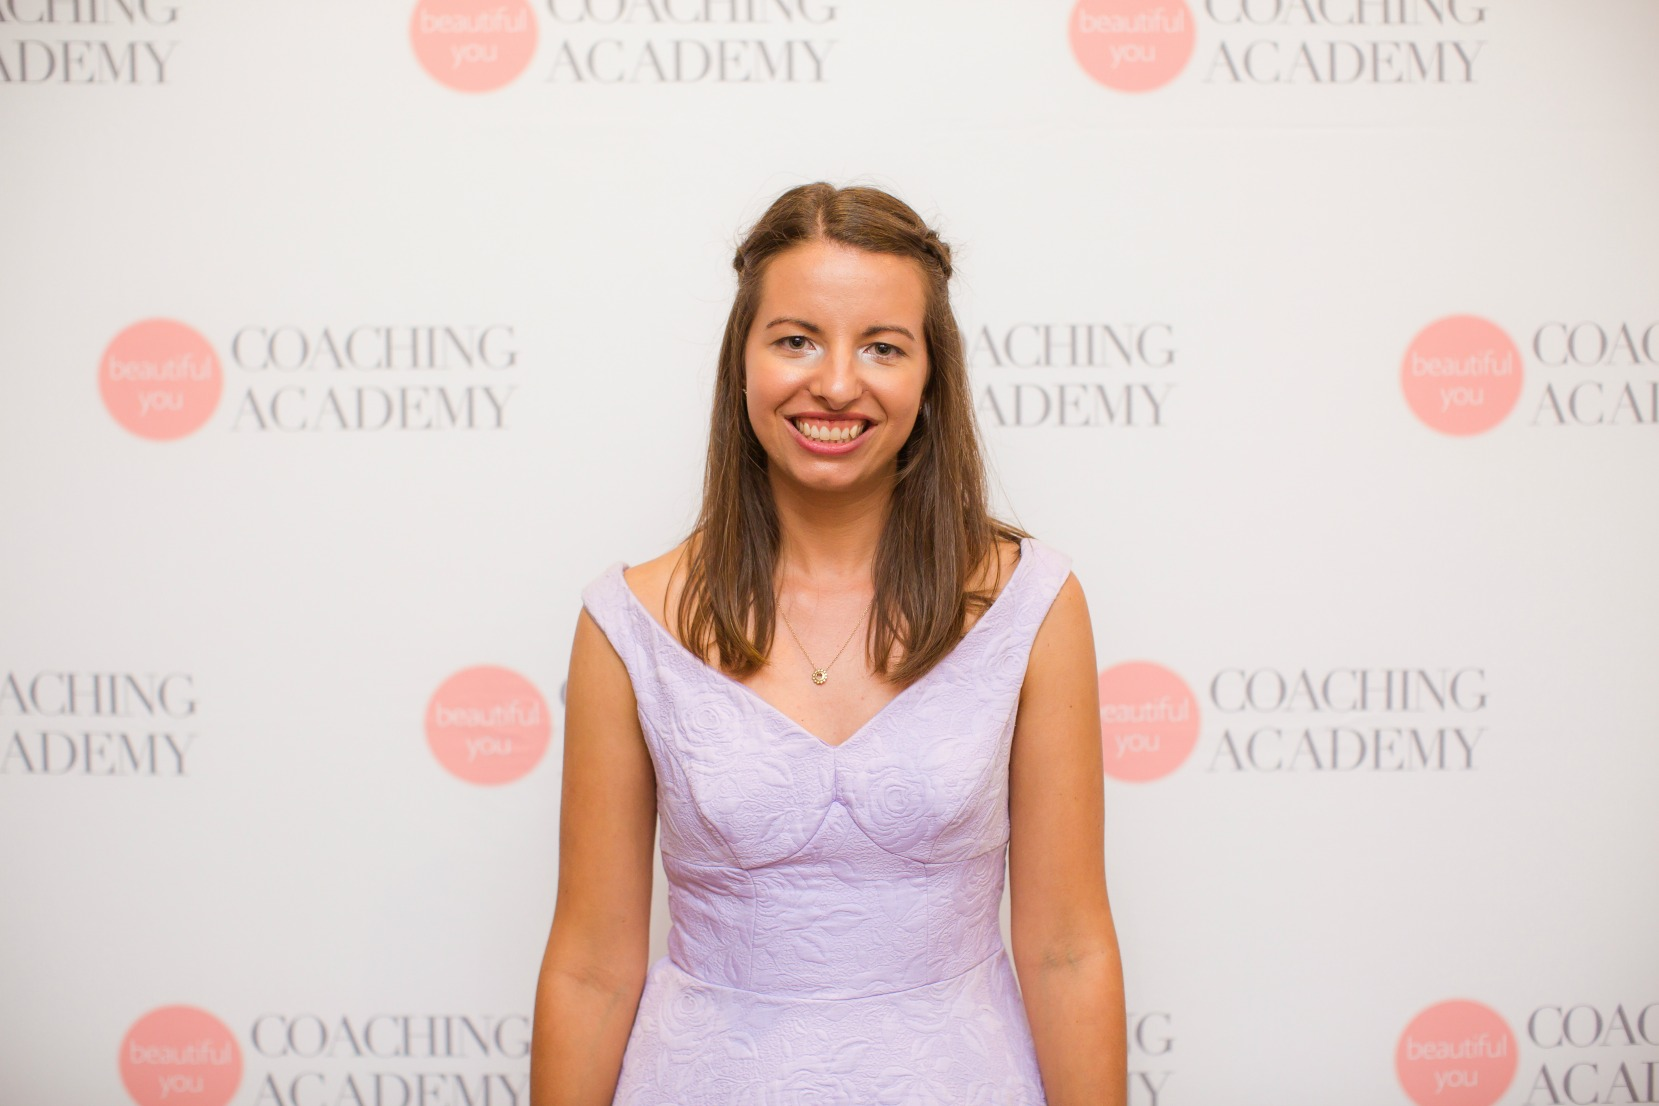 Reflections, gratitude and photos from the Beautiful You Coaching Academy Awards Night https://oneinfinitelife.com/the-gratitude-diaries-20/